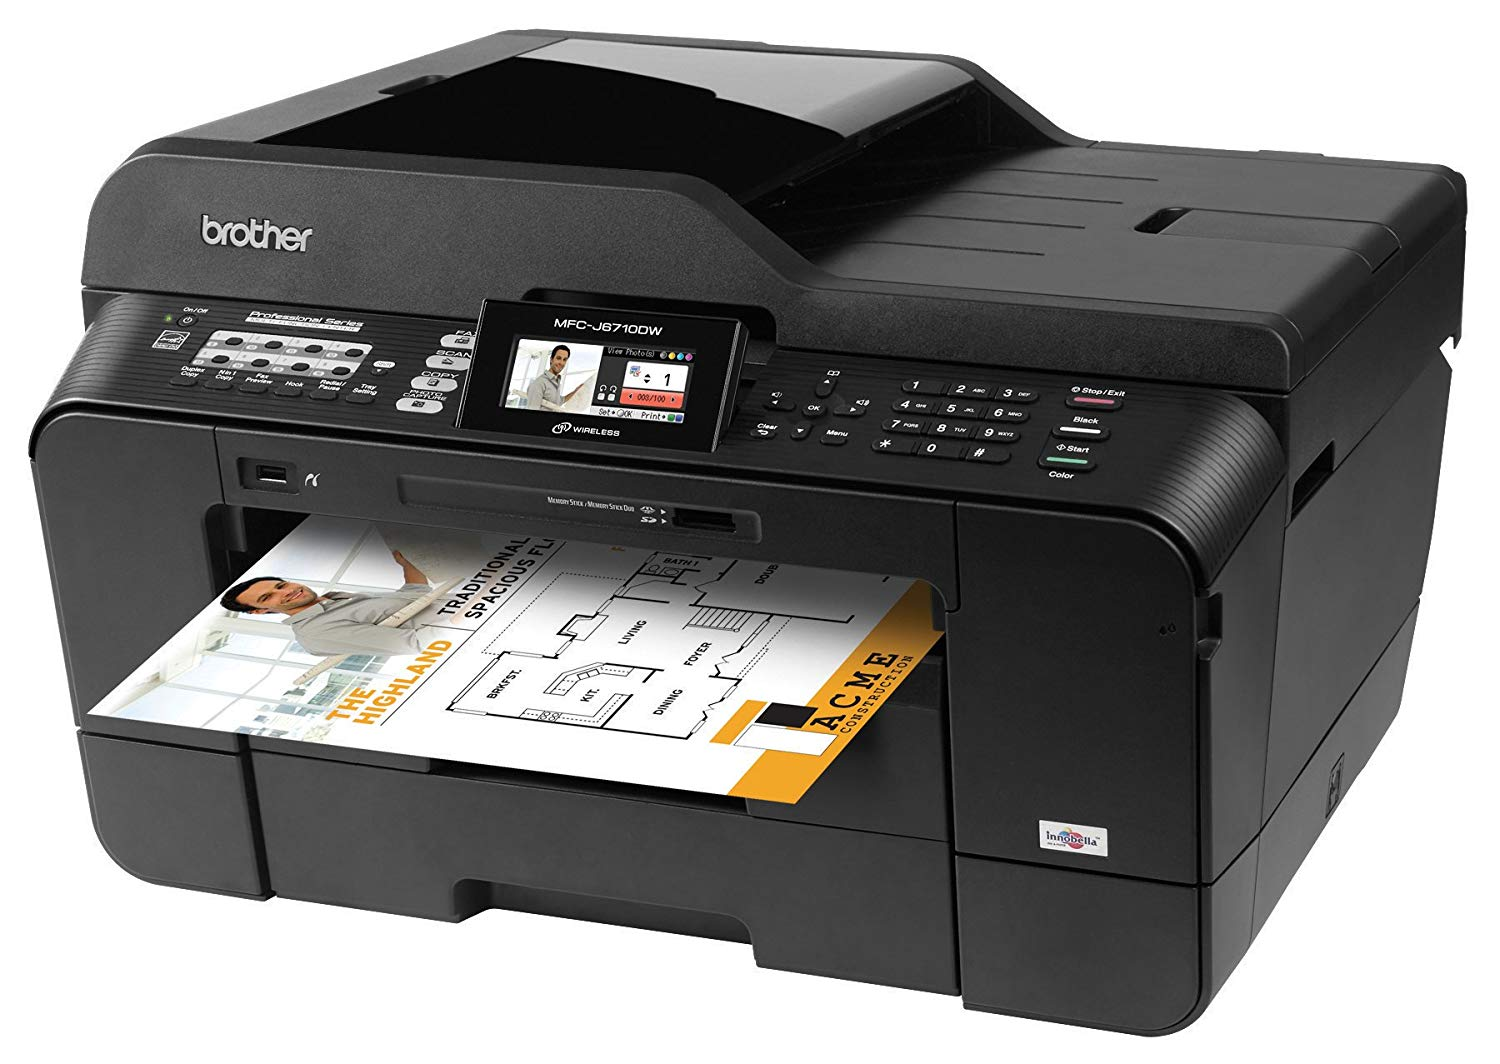 download drivers for Brother Inkjet MFCJ6710DW